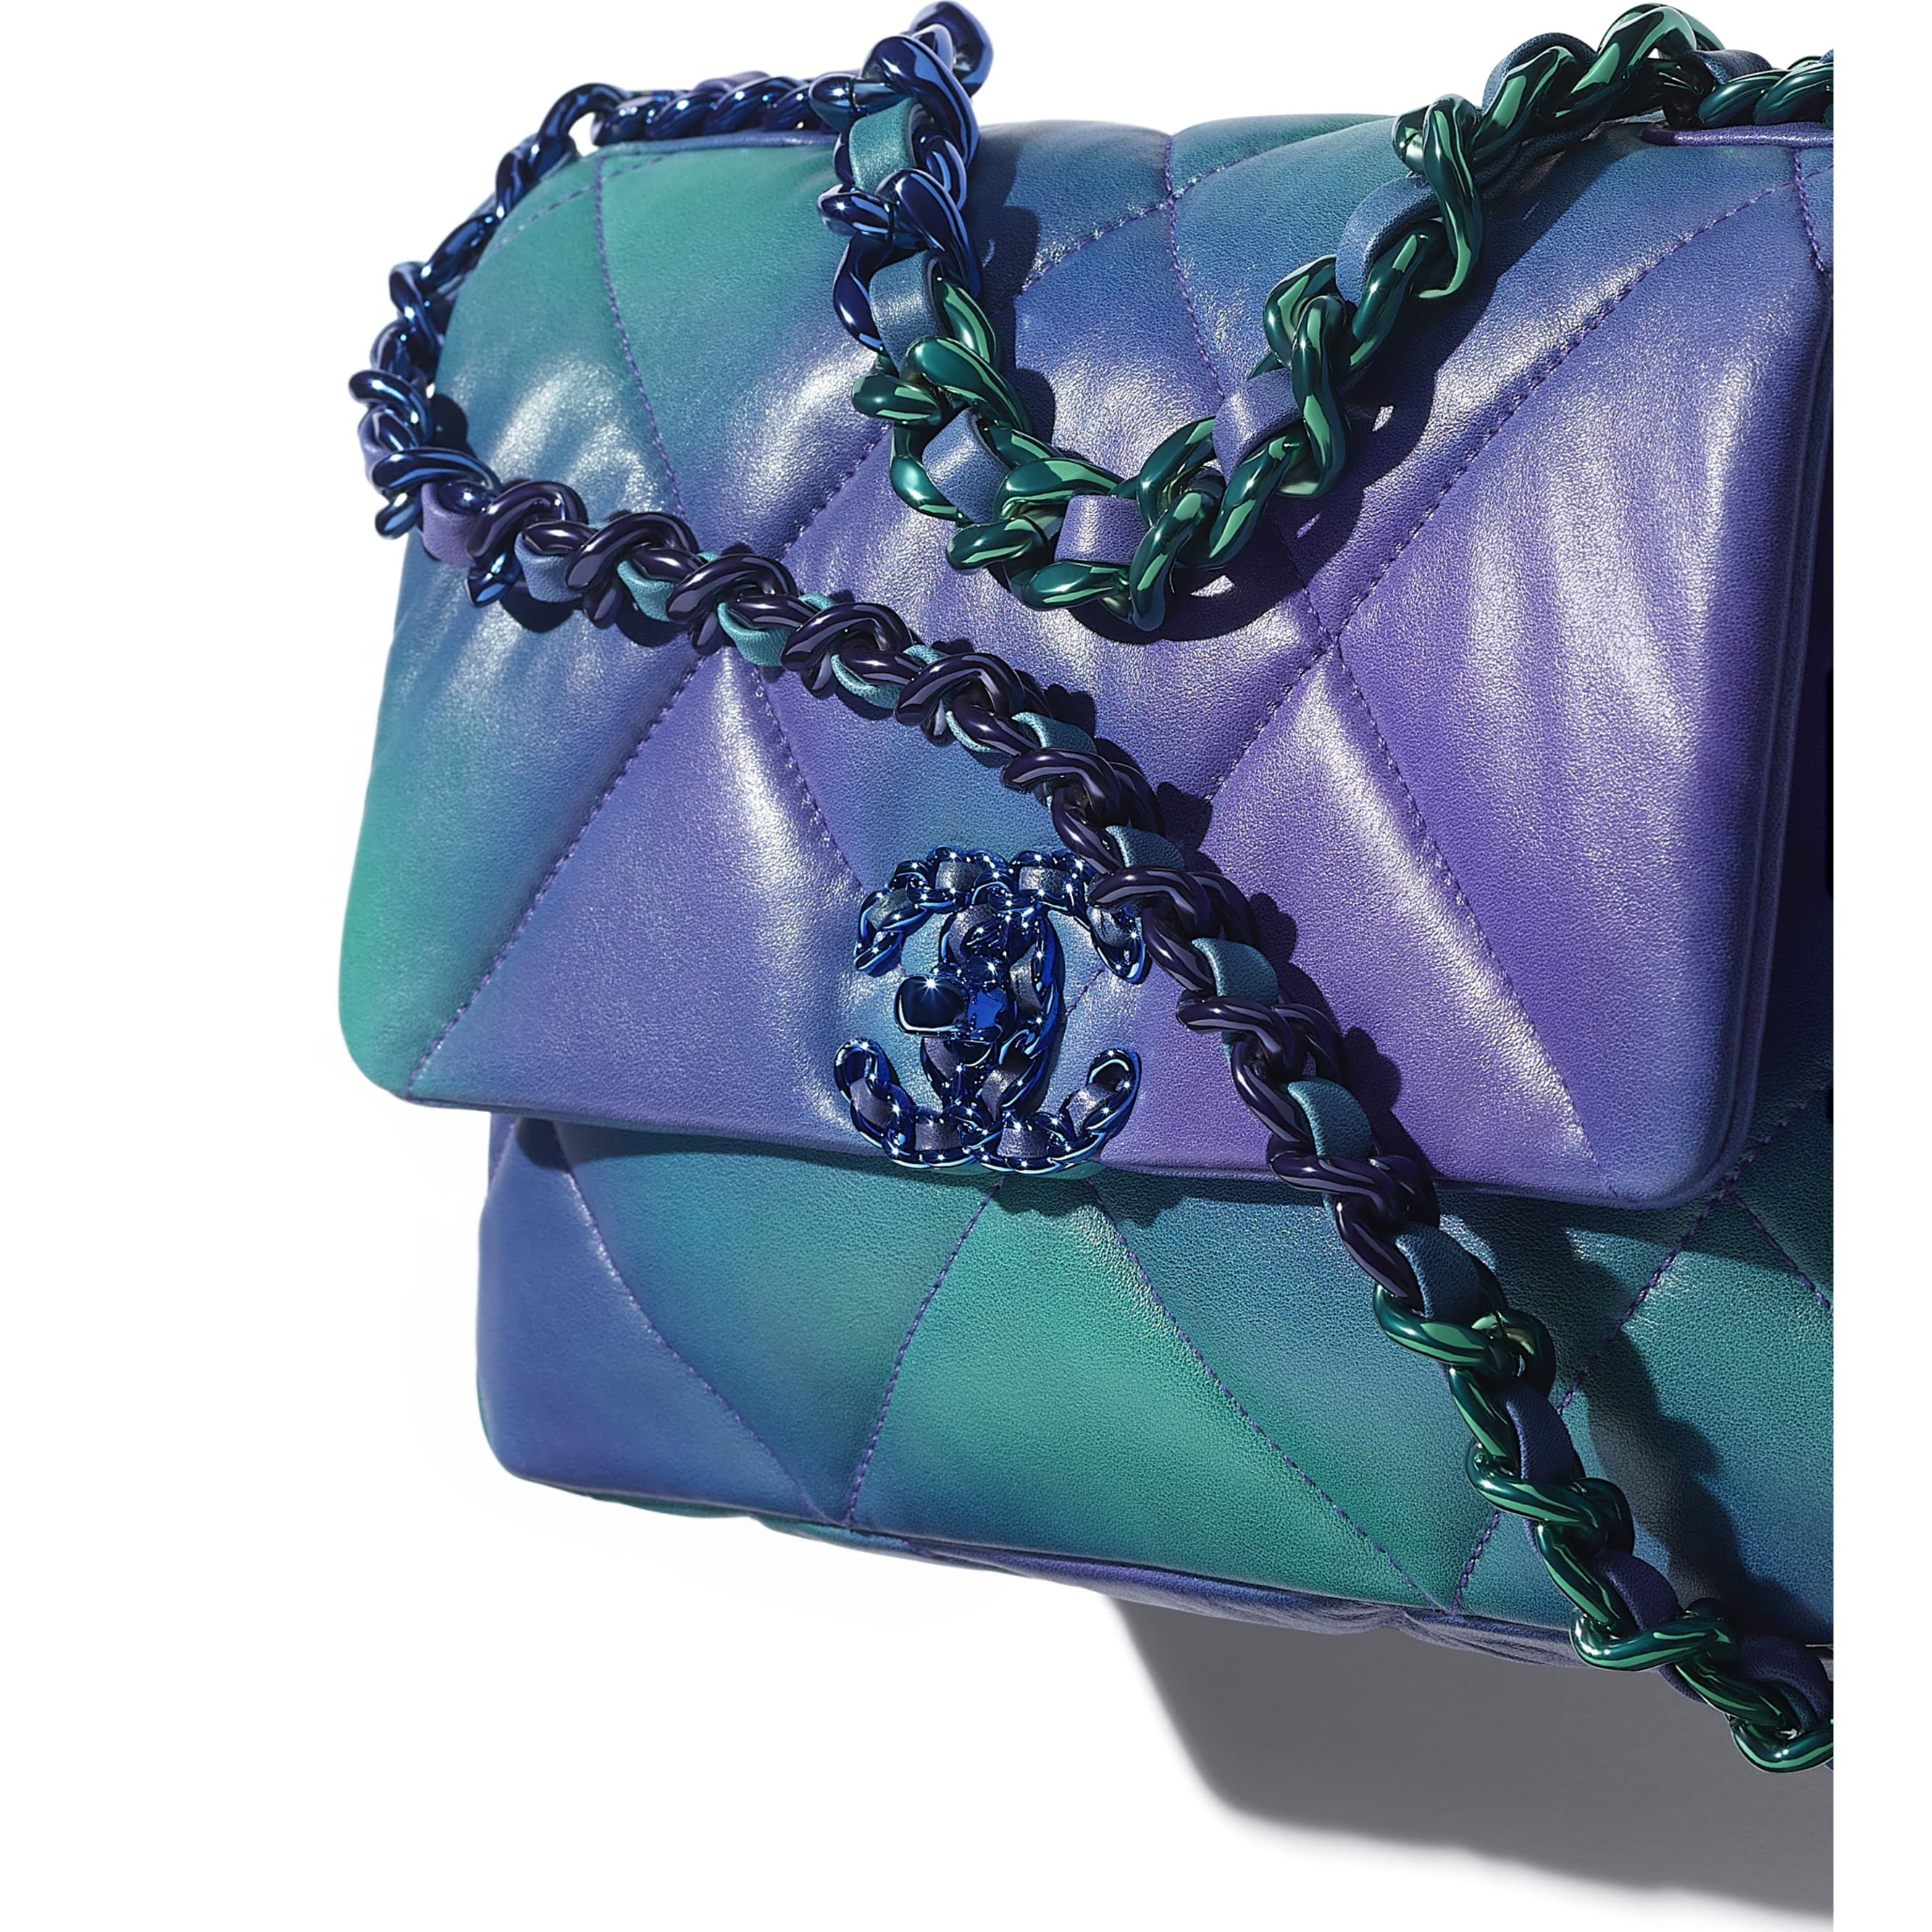 CHANEL 19 Flap Bag - Blue & Purple - Tie and Dye Calfskin & Lacquered Metal - CHANEL - Extra view - see standard sized version